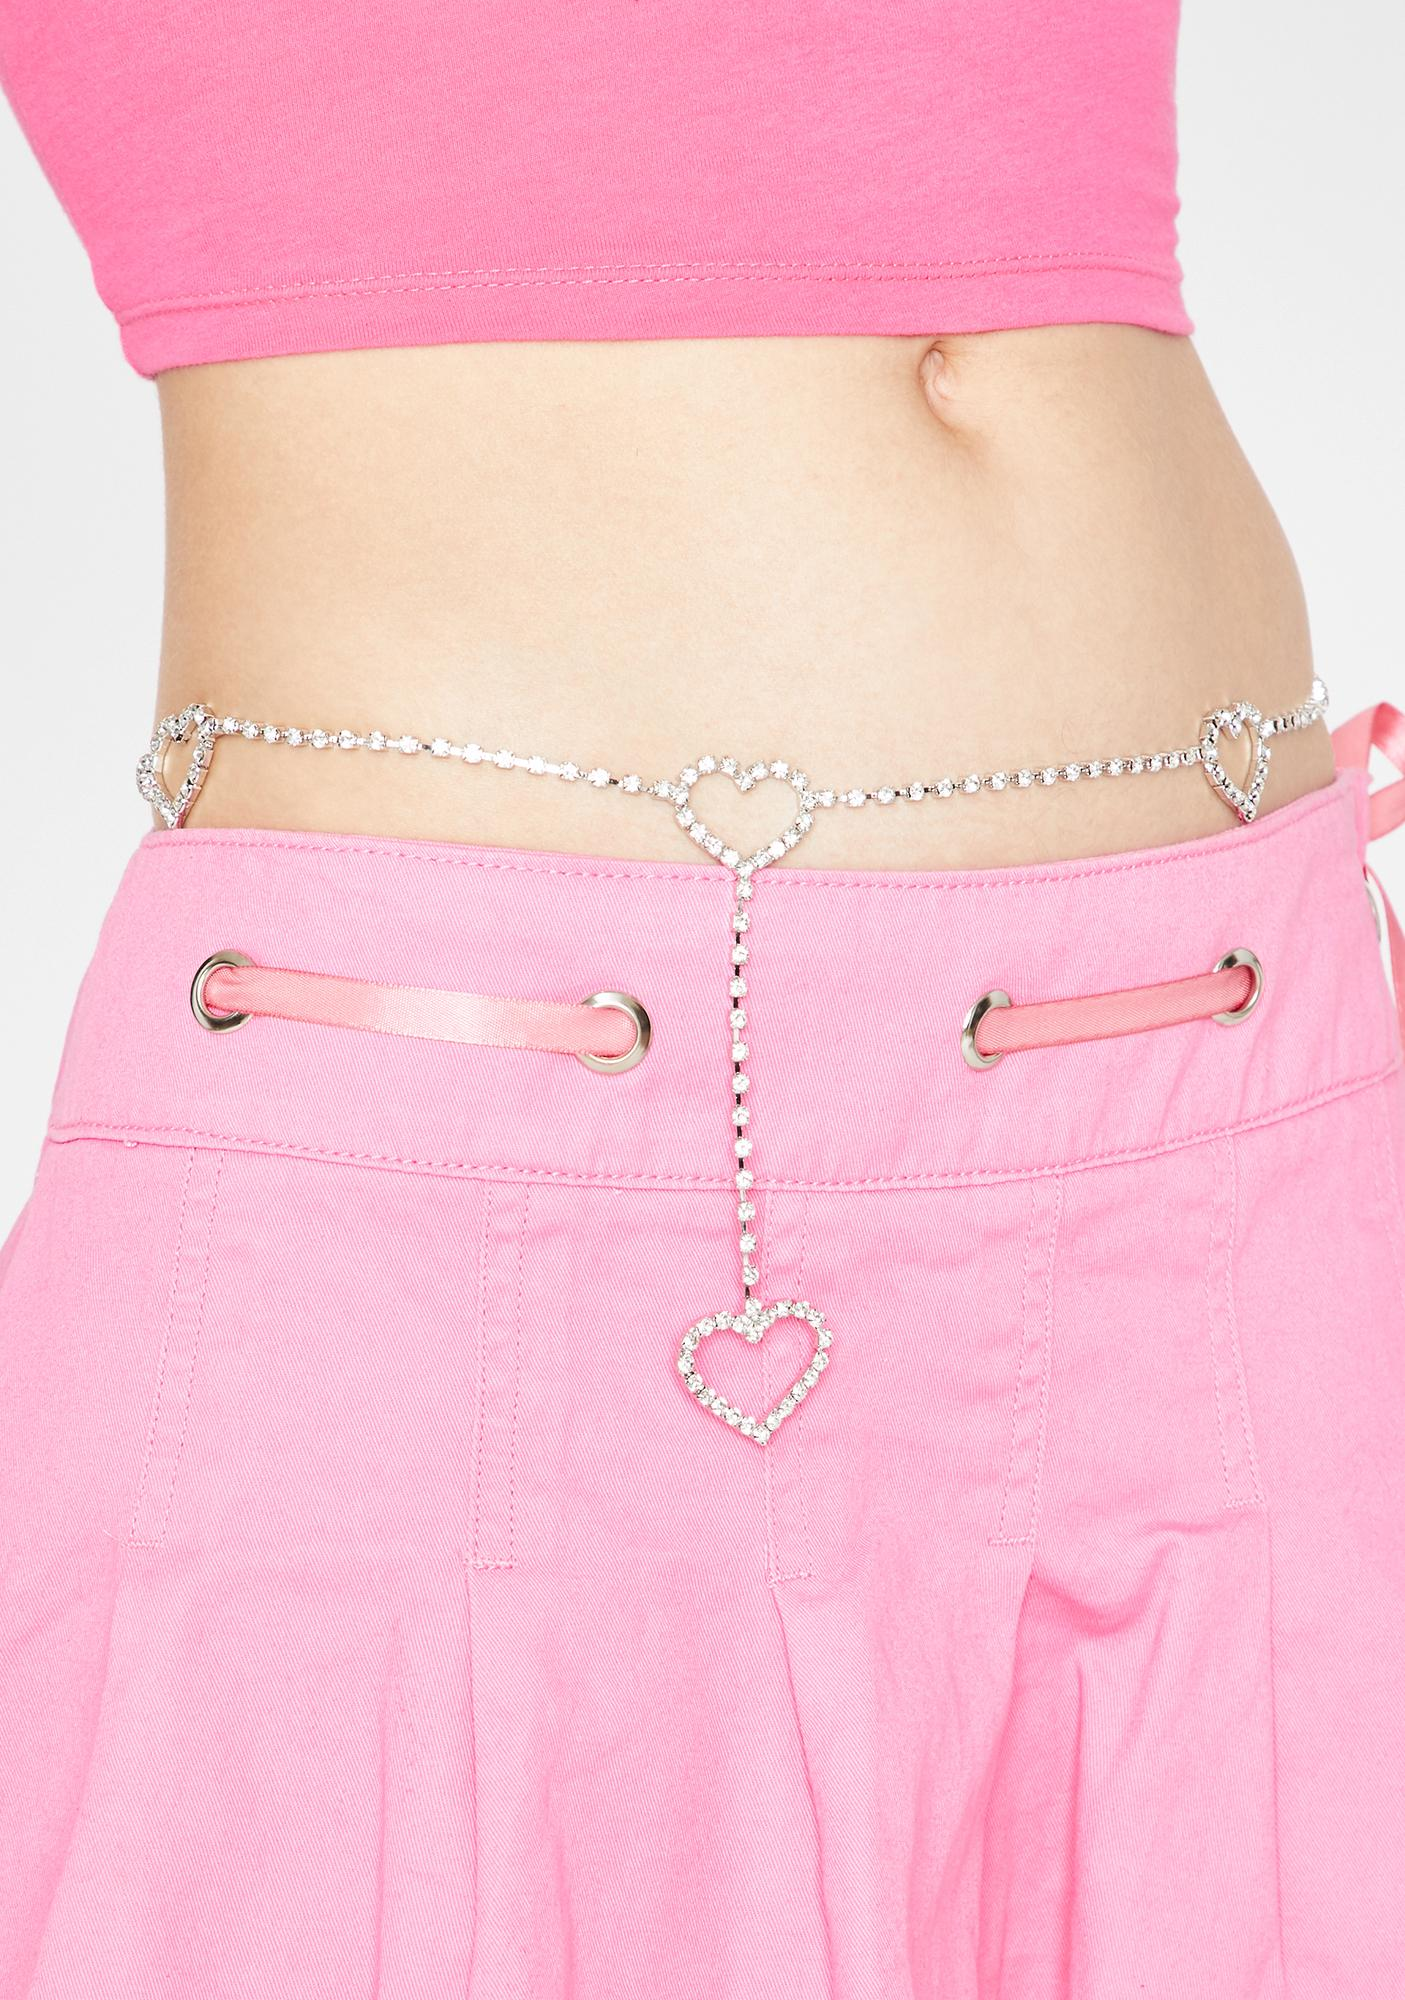 Lil Heartbreaker Chain Belt